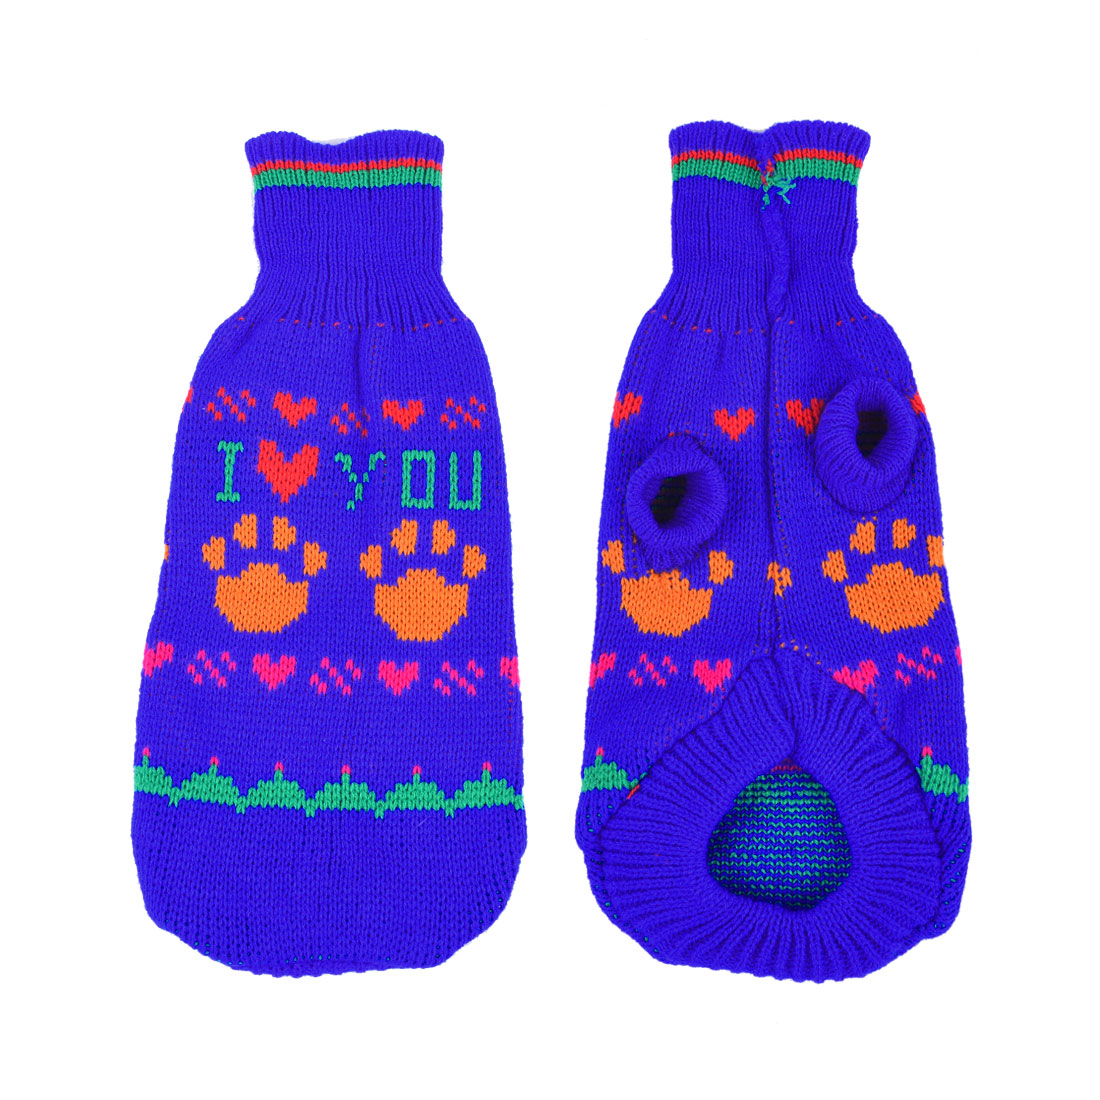 Winter Heart Pattern Knit Yorkie Dog Clothing Pet Puppy Hooded Sweater Blue M